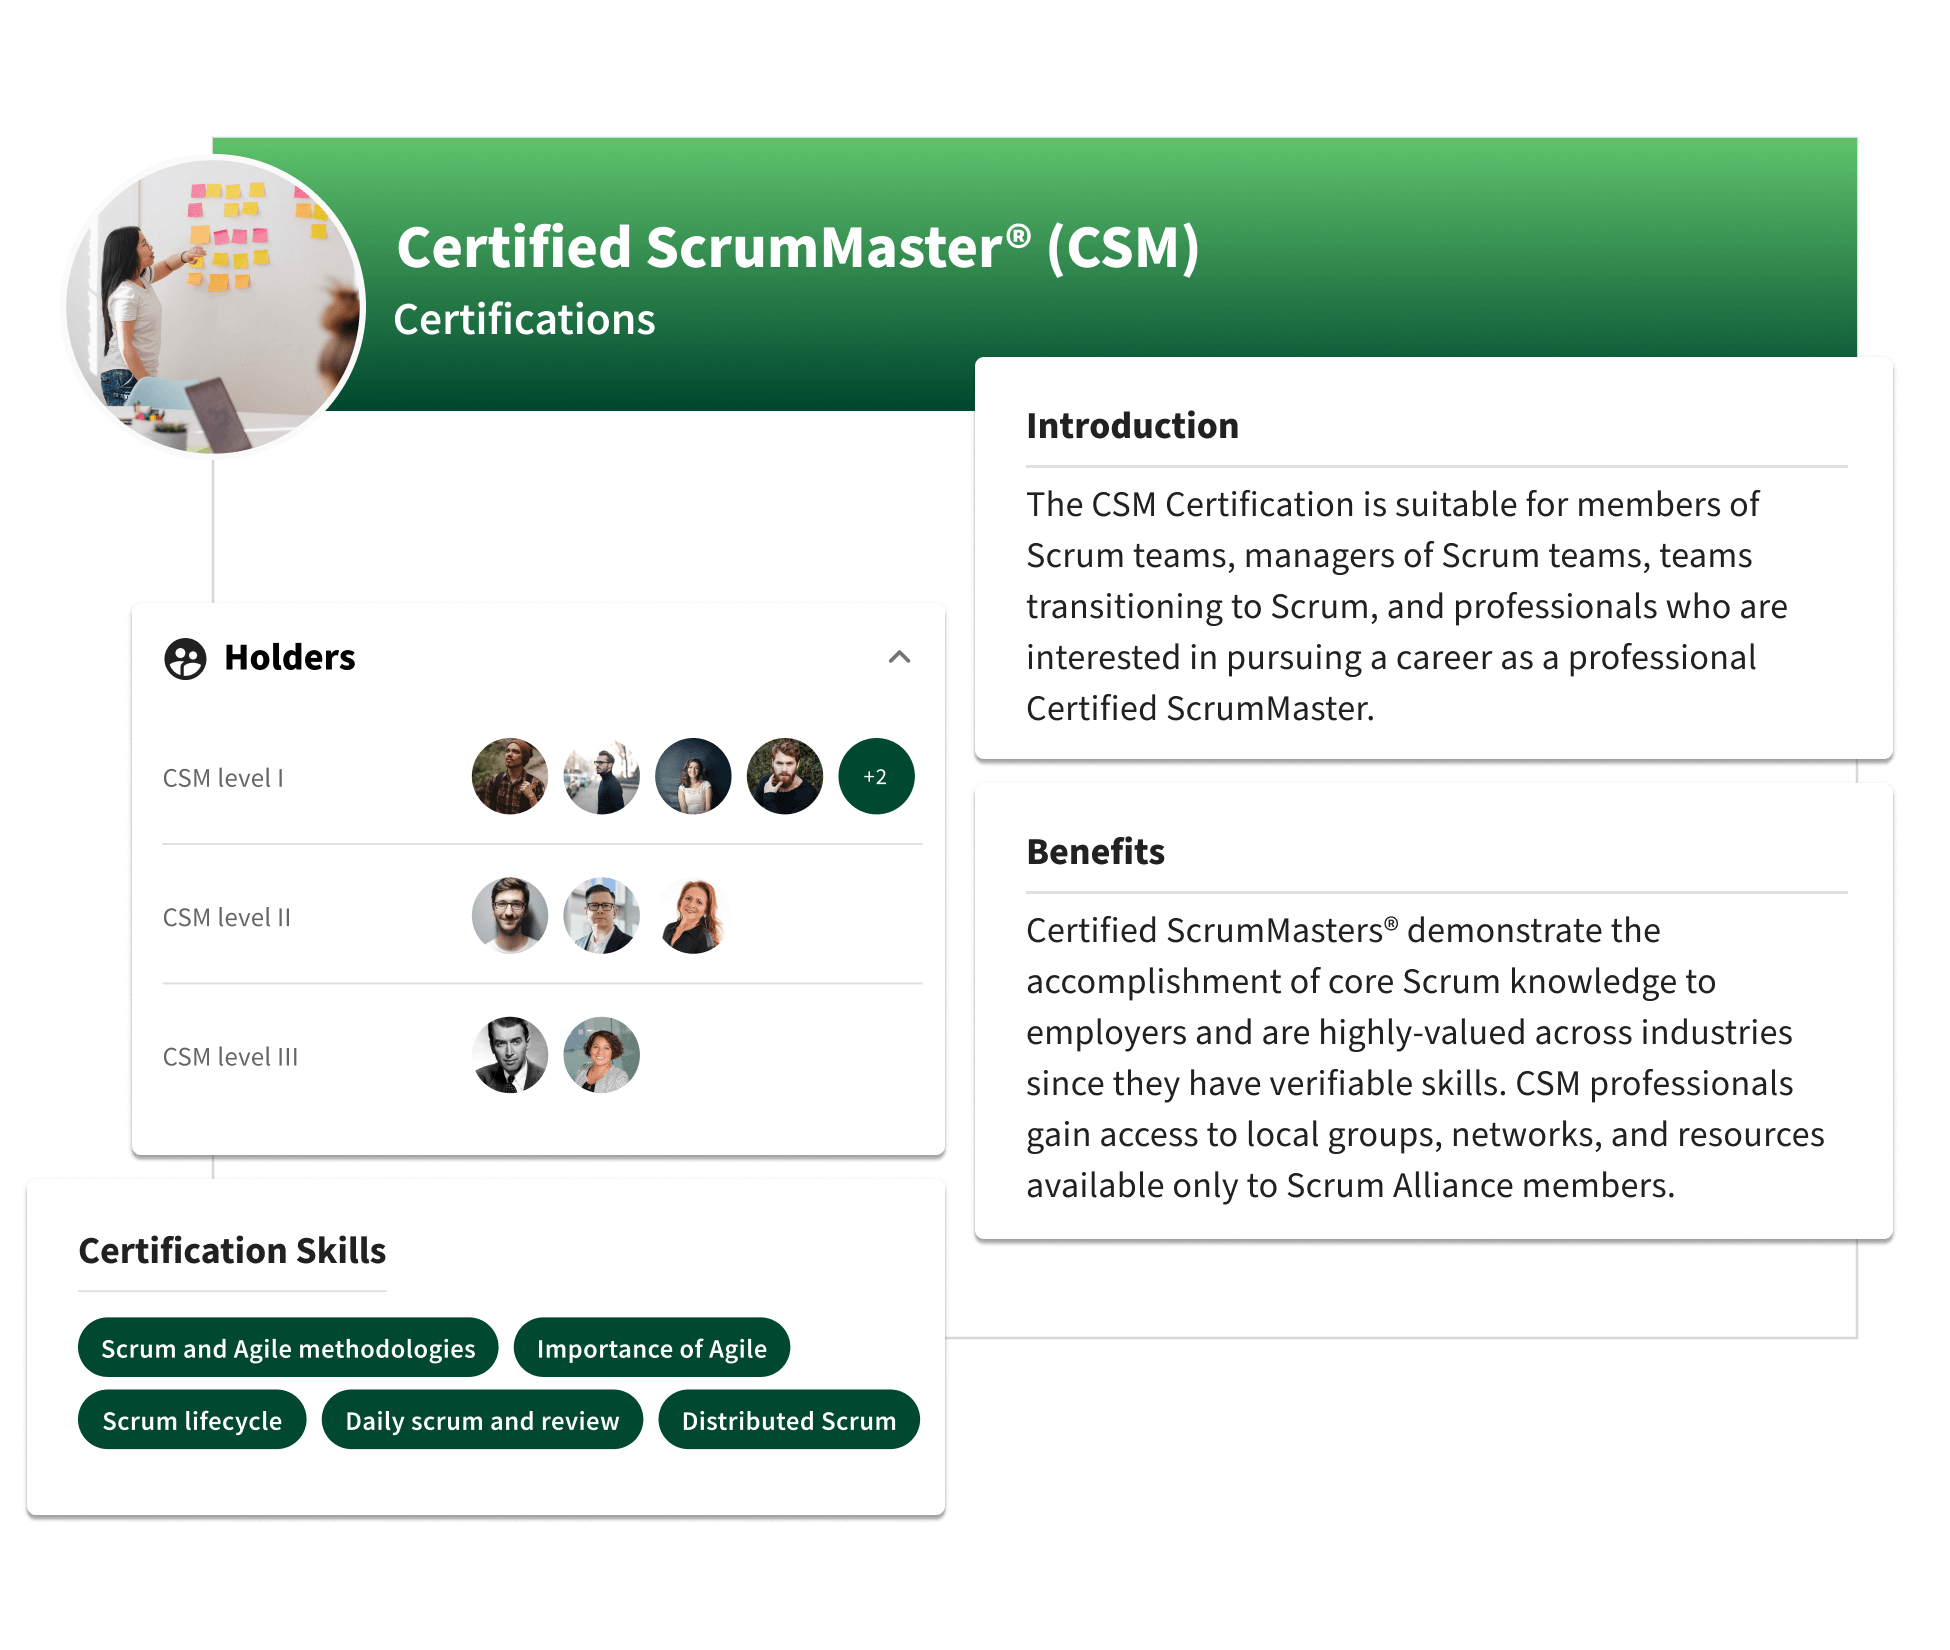 A profile for certifications